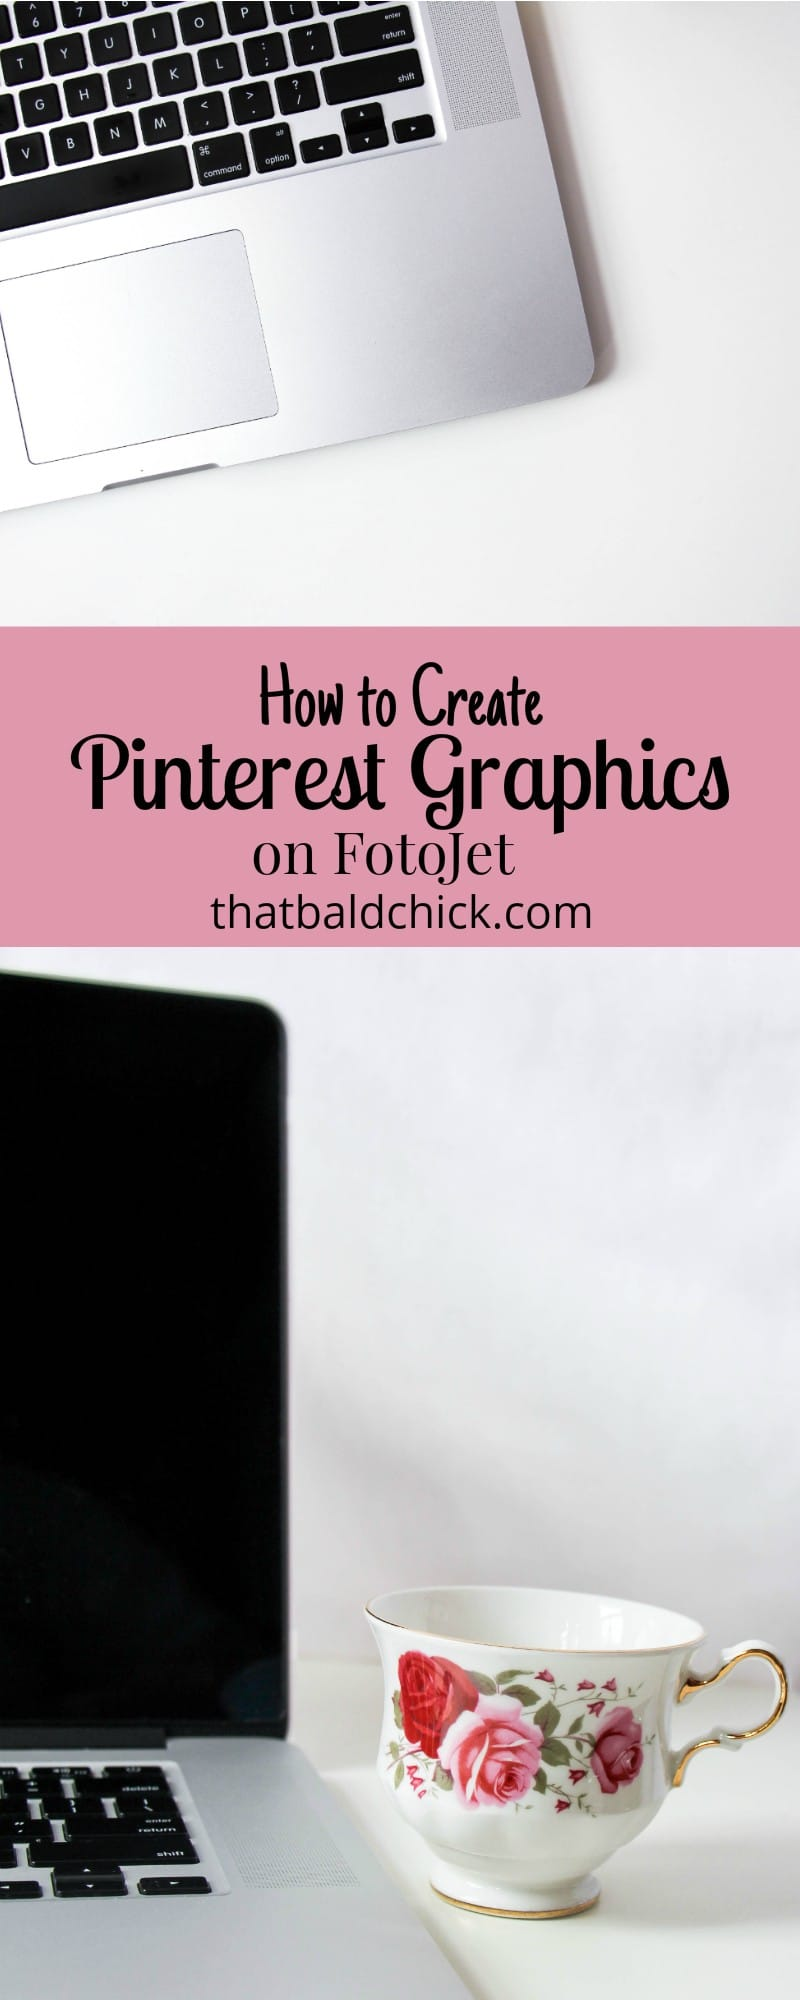 How to Create Pinterest Graphics on Fotojet at thatbaldchick.com